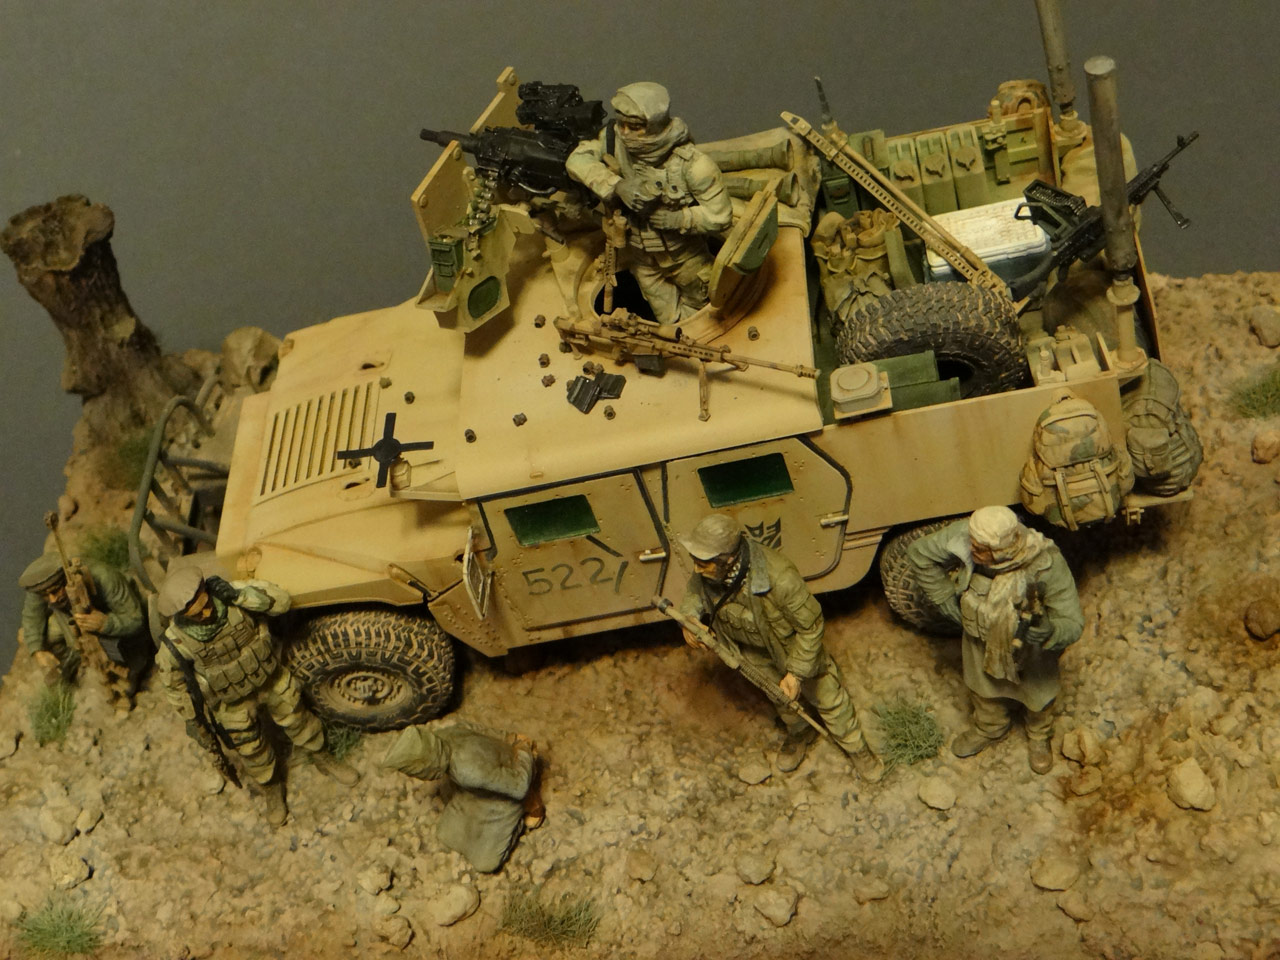 Dioramas and Vignettes: Behind the enemy's lines, photo #5